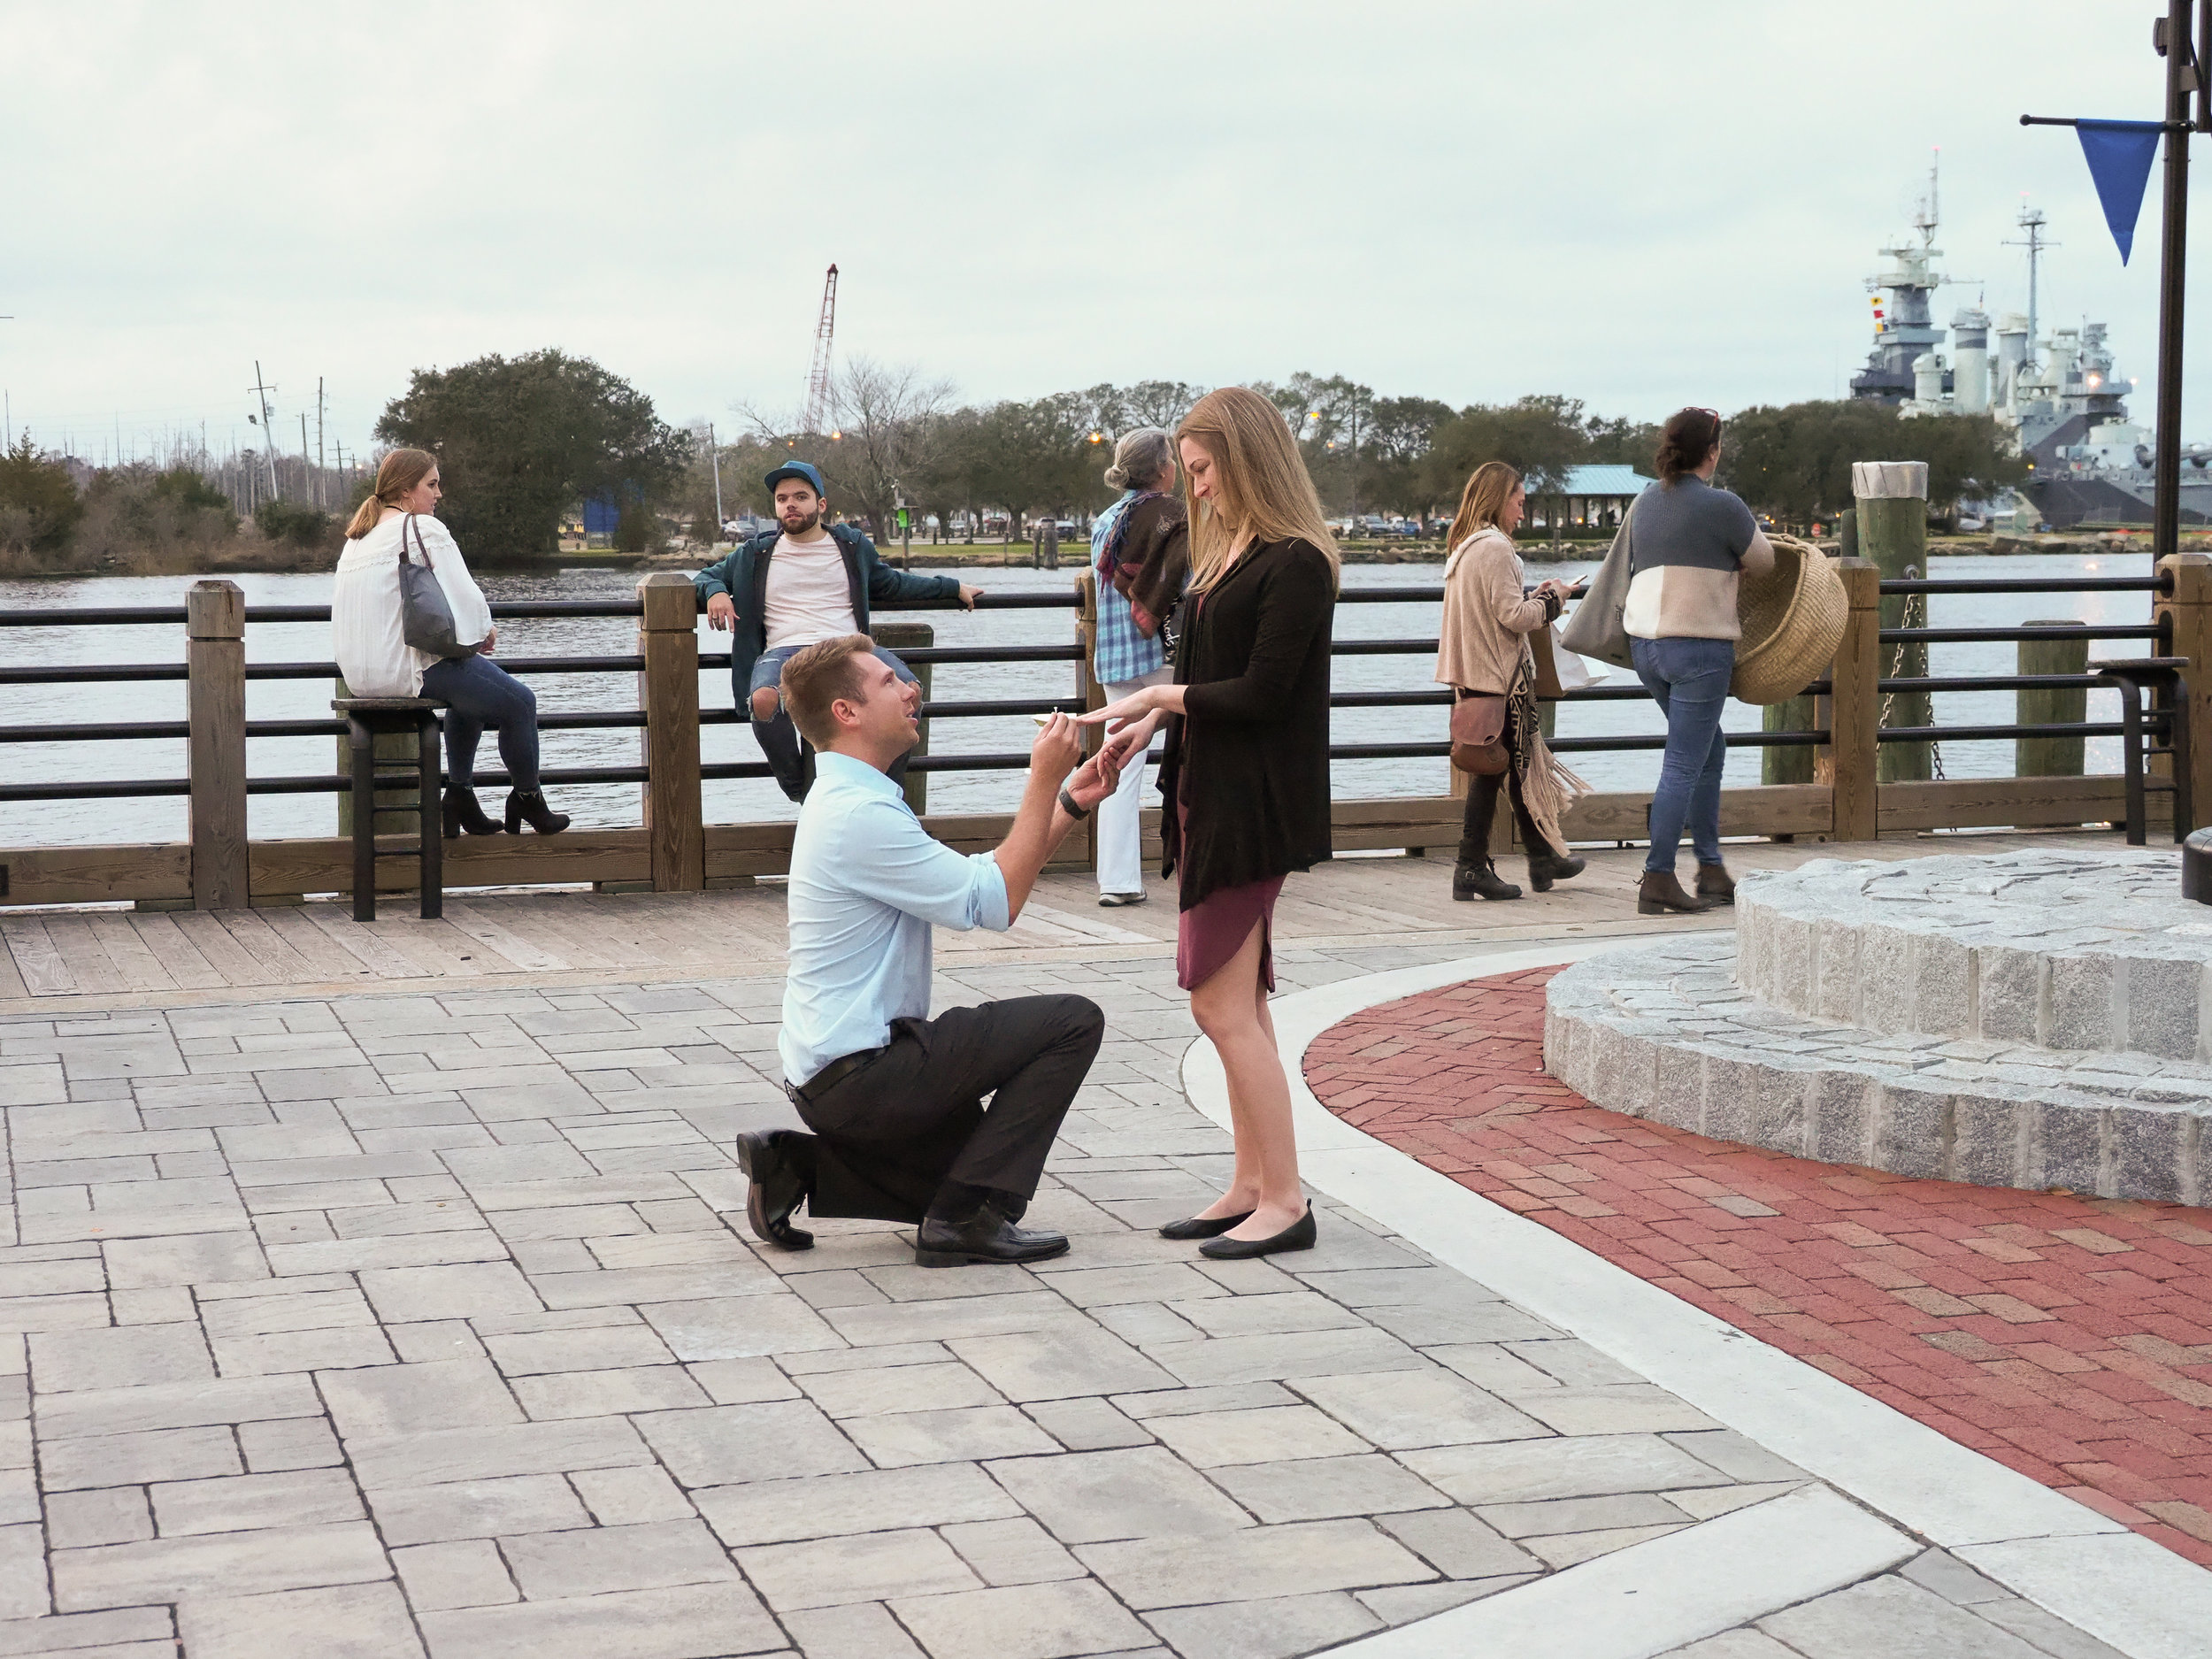 Propose - Placing the ring on her finger. Wilmington, NC Riverwalk.